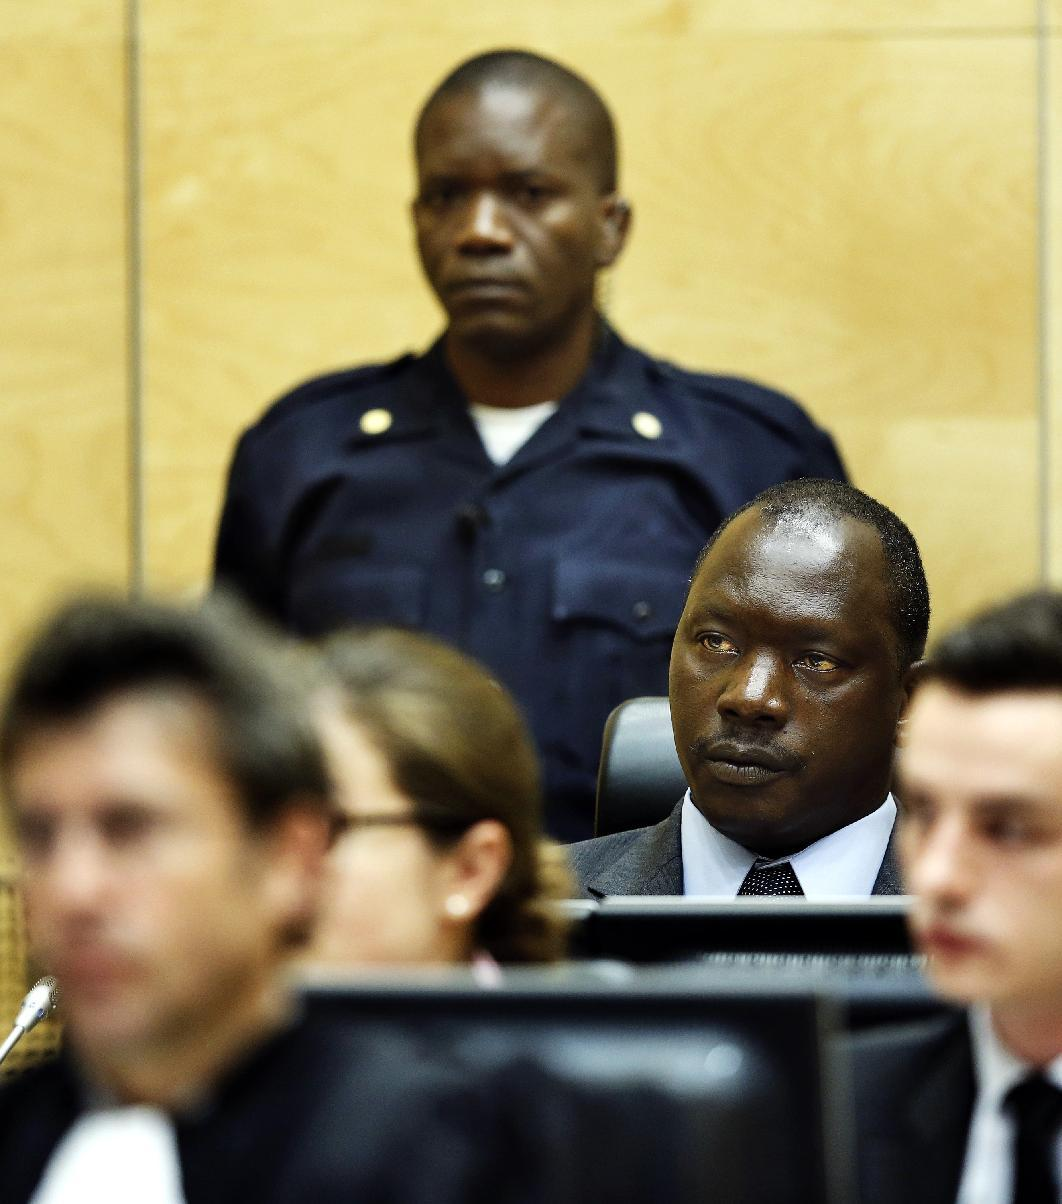 Congolese warlord Thomas Lubanga, second right, awaits his sentence in the courtroom of the International Criminal Court (ICC) in The Hague, Netherlands, Tuesday, July 10, 2012. Judges at the ICC are handing down their first-ever sentence on Tuesday, following the conviction of Lubanga in May for conscripting child soldiers. The sentencing is considered a milestone since it is the first to be issued by the permanent court in The Hague, and because it is expected to set a war crimes law precedent in awarding damages for victims. (AP Photo/Jerry Lampen, Pool)